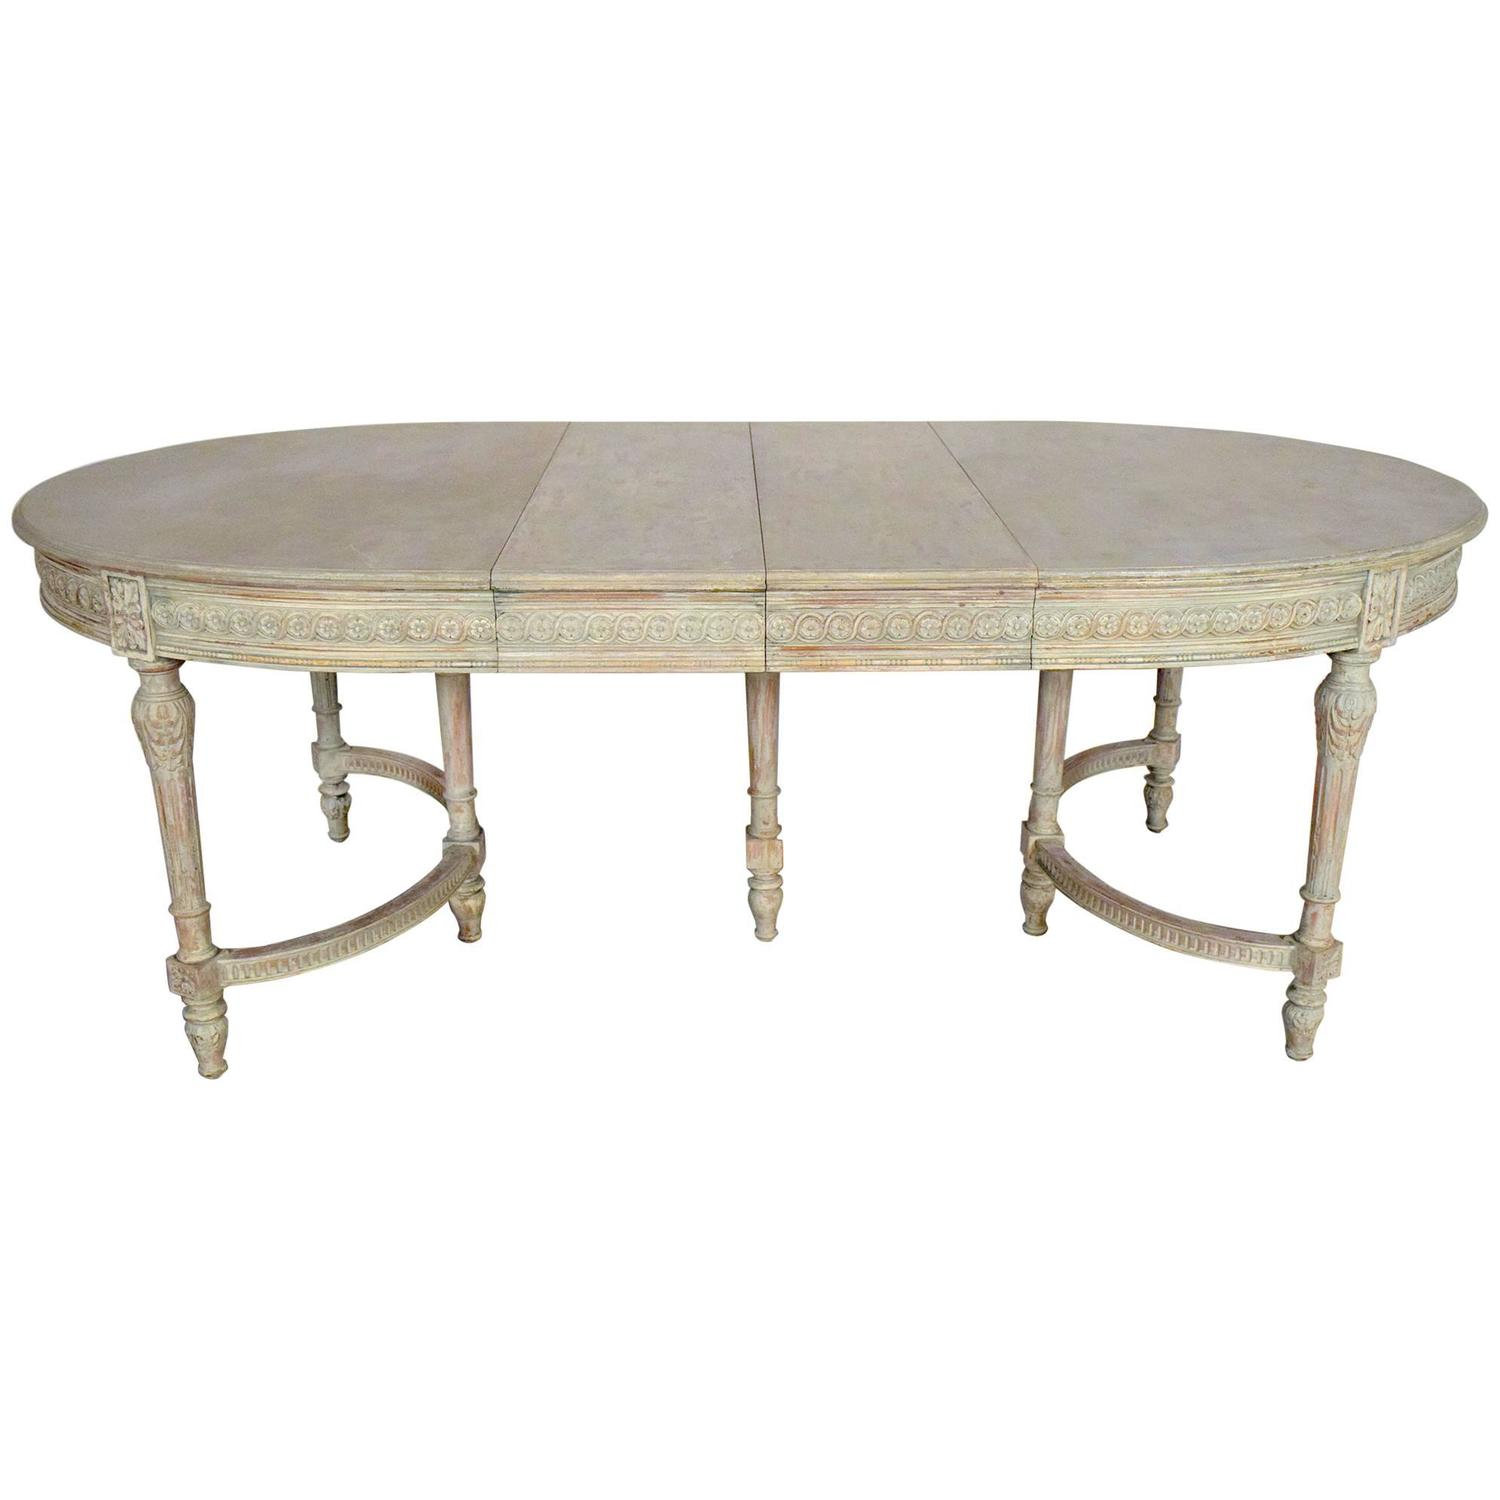 Long Dining Table in Louis XVI Style at 1stdibs